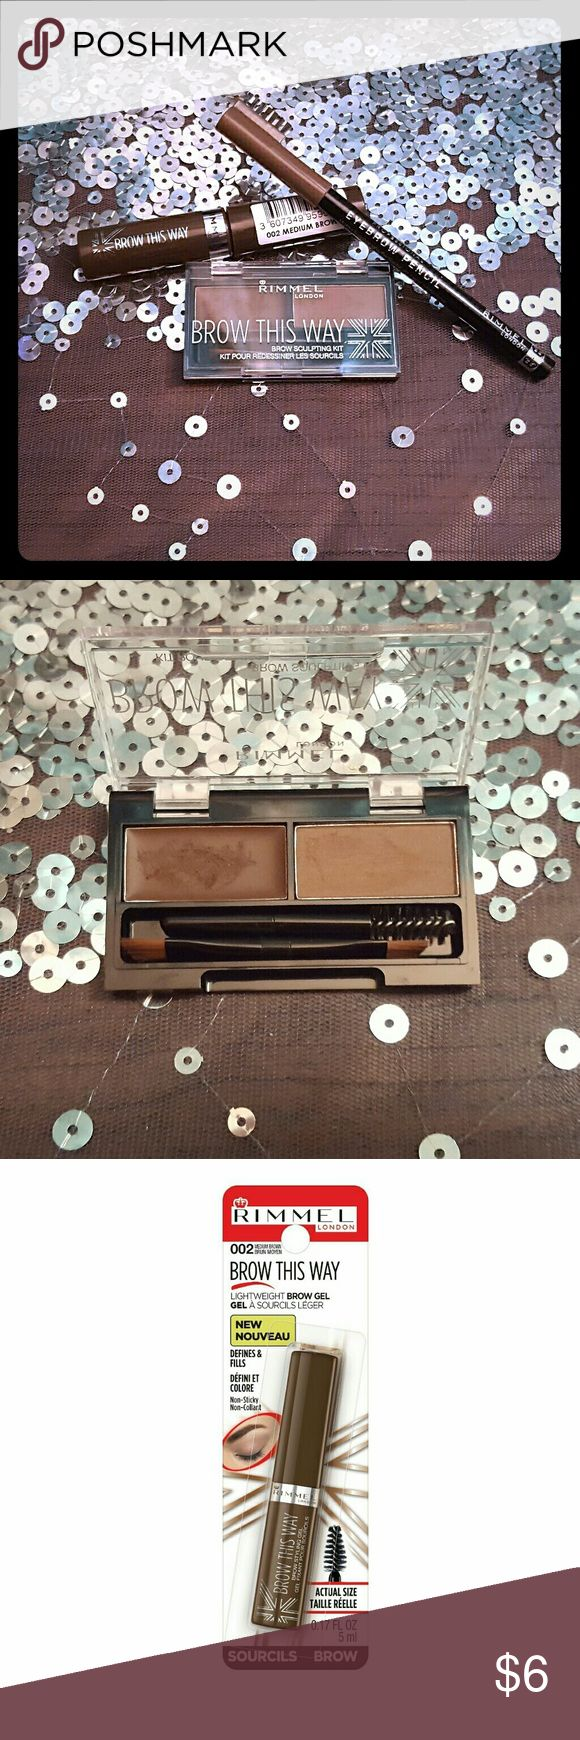 Rimmel London Brow This Way Bundle Brow This Way Brow Gel (medium brown) - Like new Brow Sculpting Kit (medium brown) - Gently used once. Will sanitize.  *Rimmel Professional Eyebrow Pencil (Hazel) listed separately. Add to bundle for discount. Rimmel Makeup